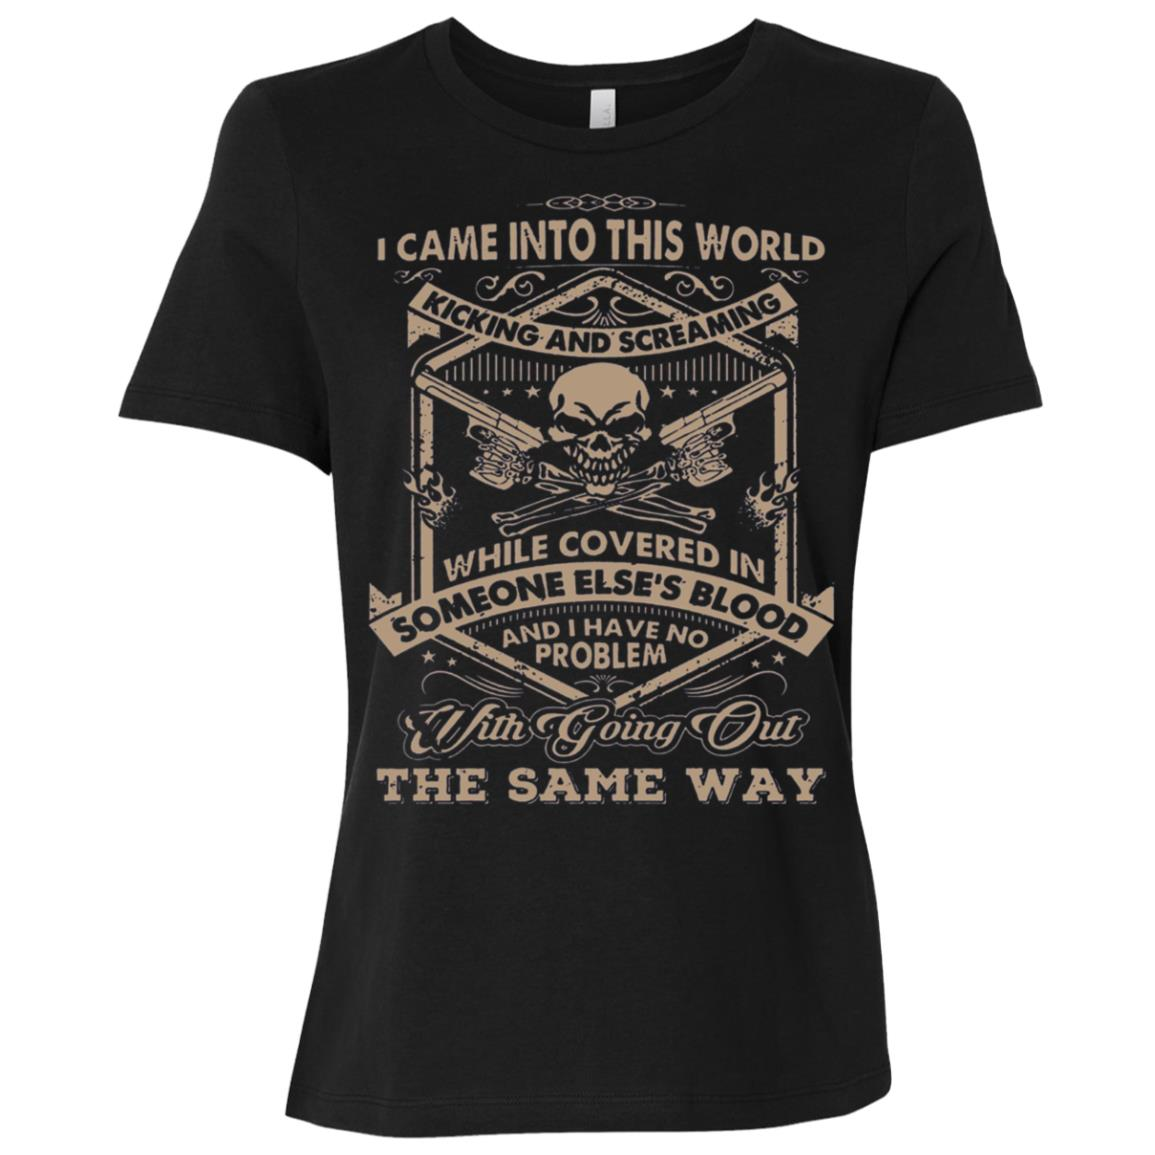 I Came Into This World Kicking and Screaming s Women Short Sleeve T-Shirt